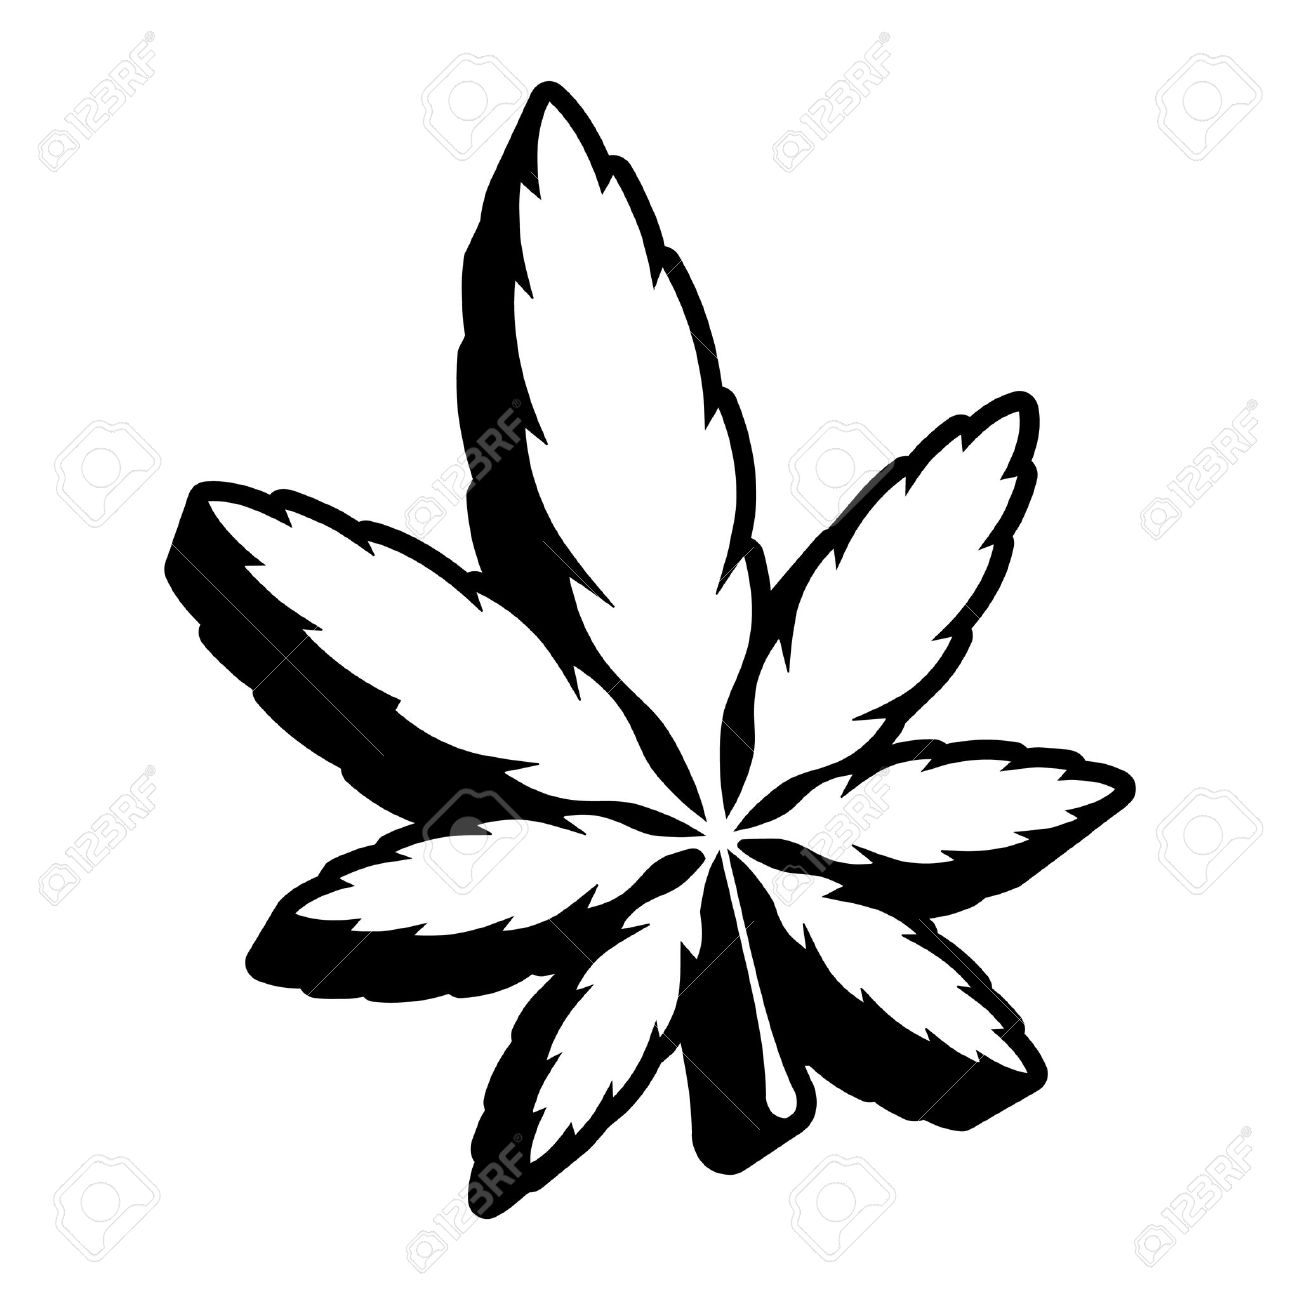 weed drawing at getdrawings | free for personal use weed drawing